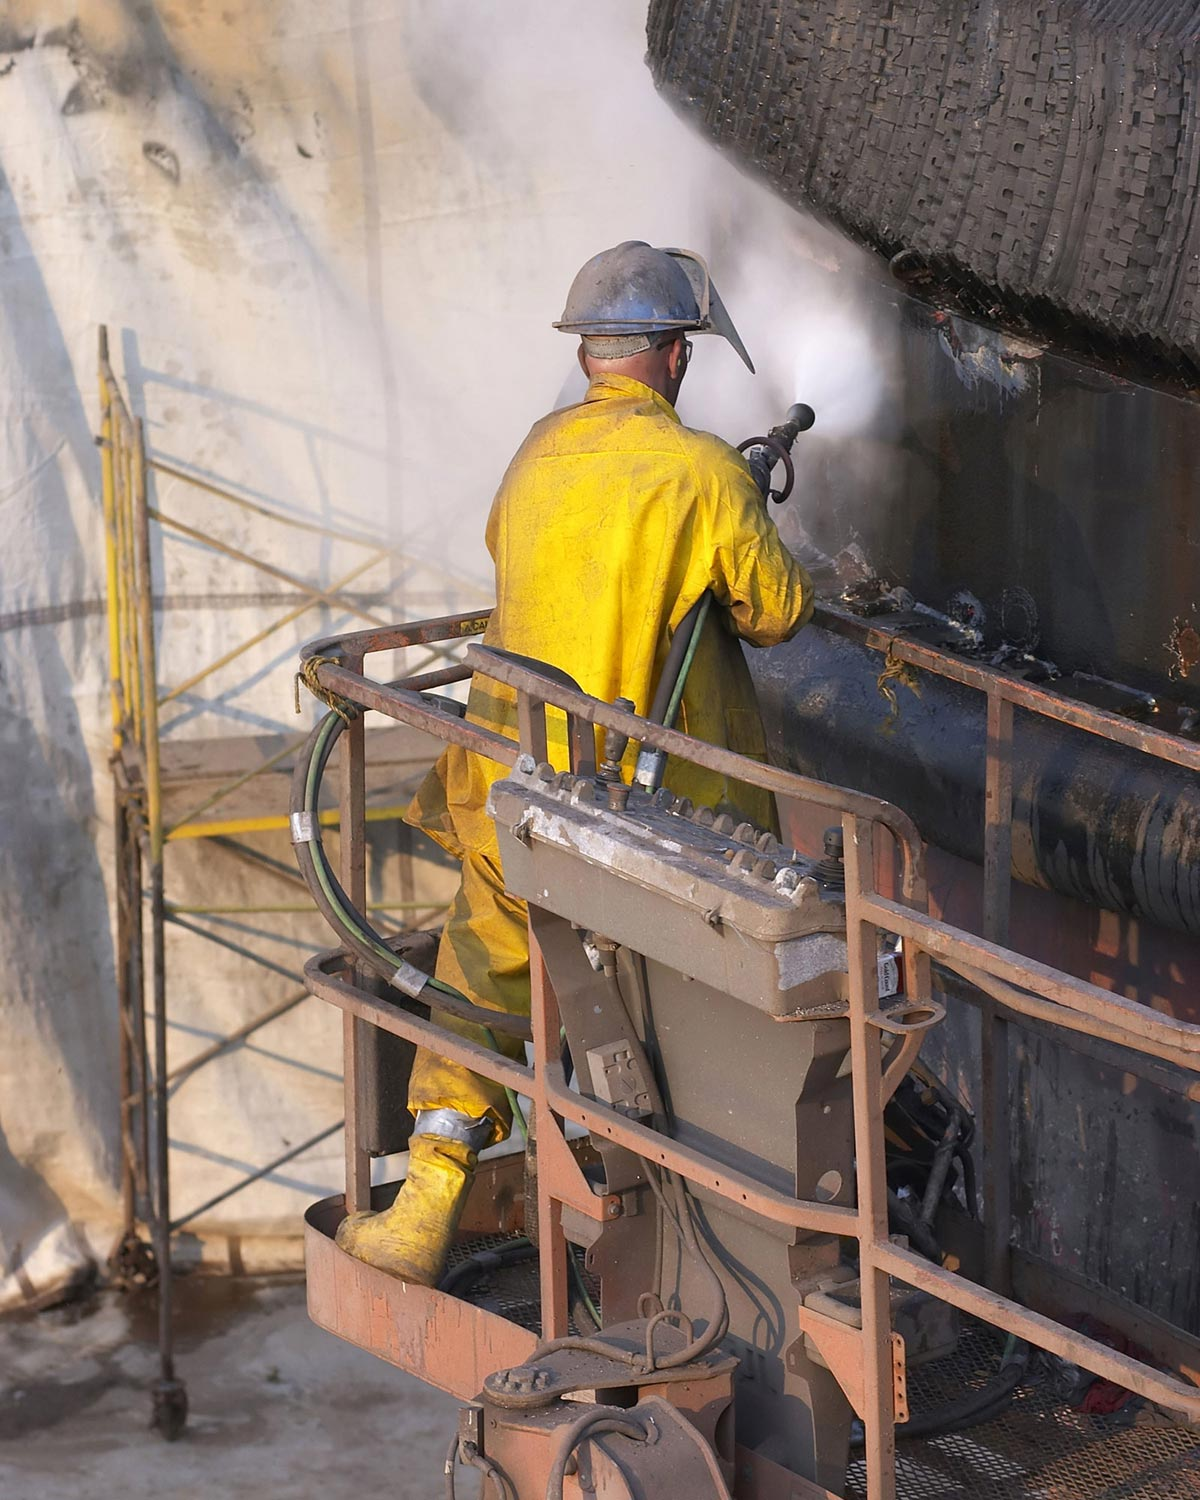 Blasting of paint for surface preparation